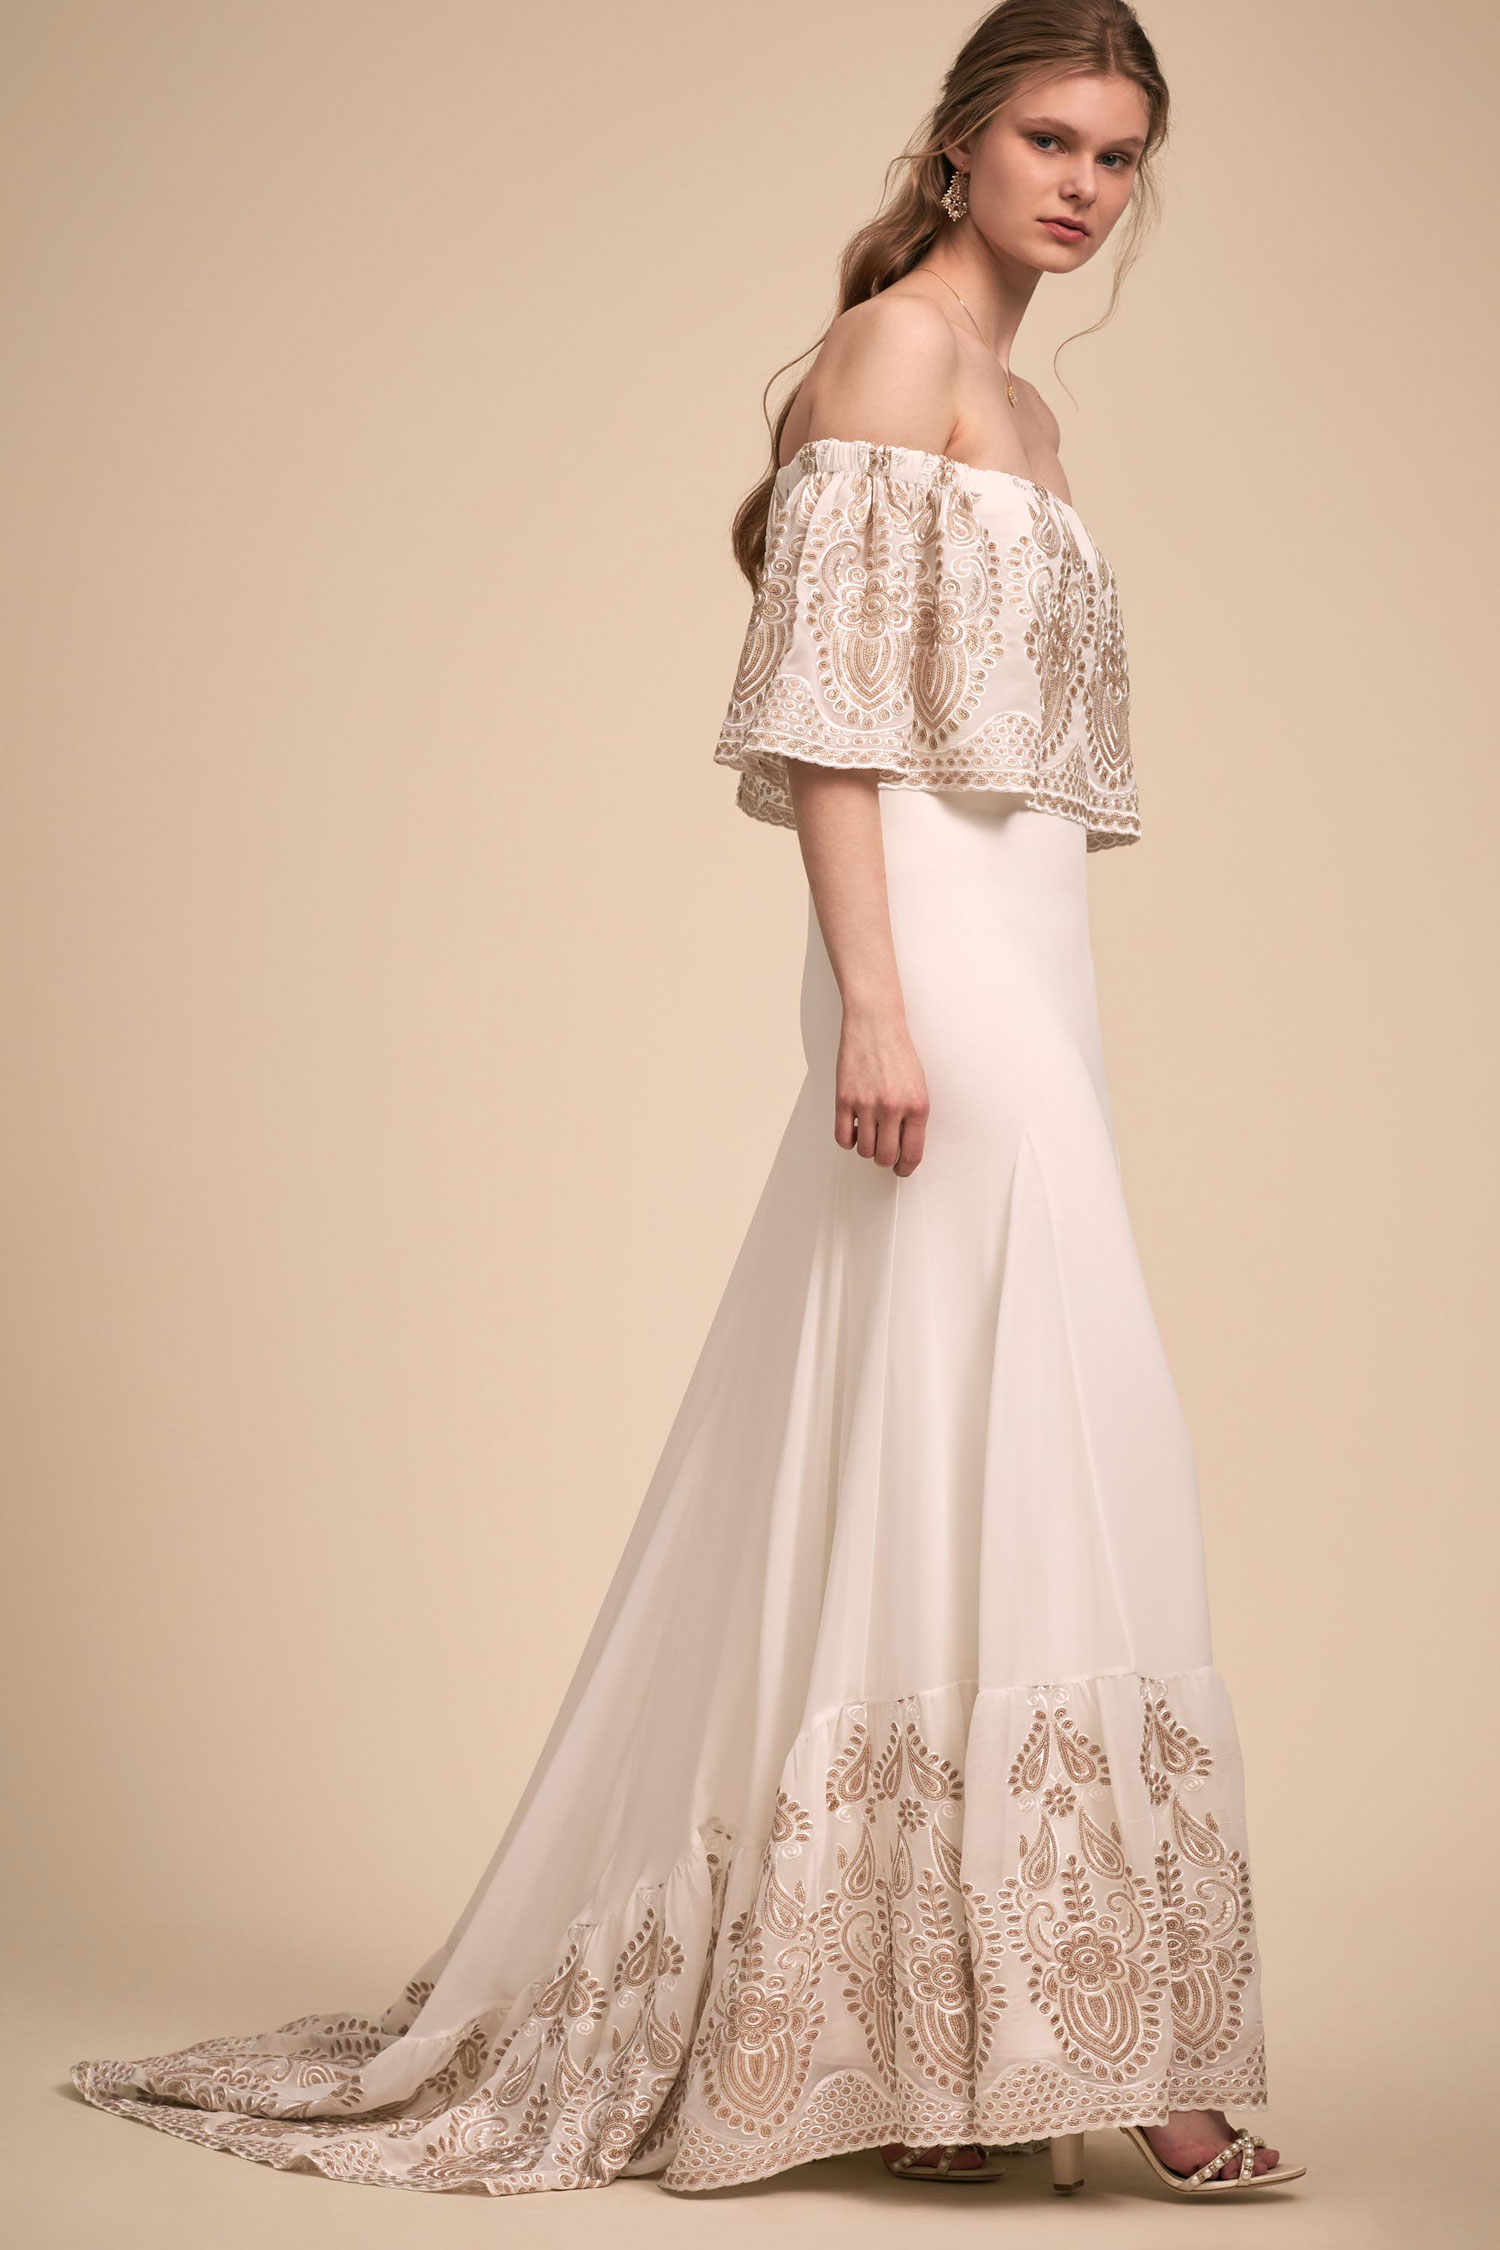 BHLDN The Designer Collective Nomadic by Daughters of Simone boho wedding dress 1970s inspired